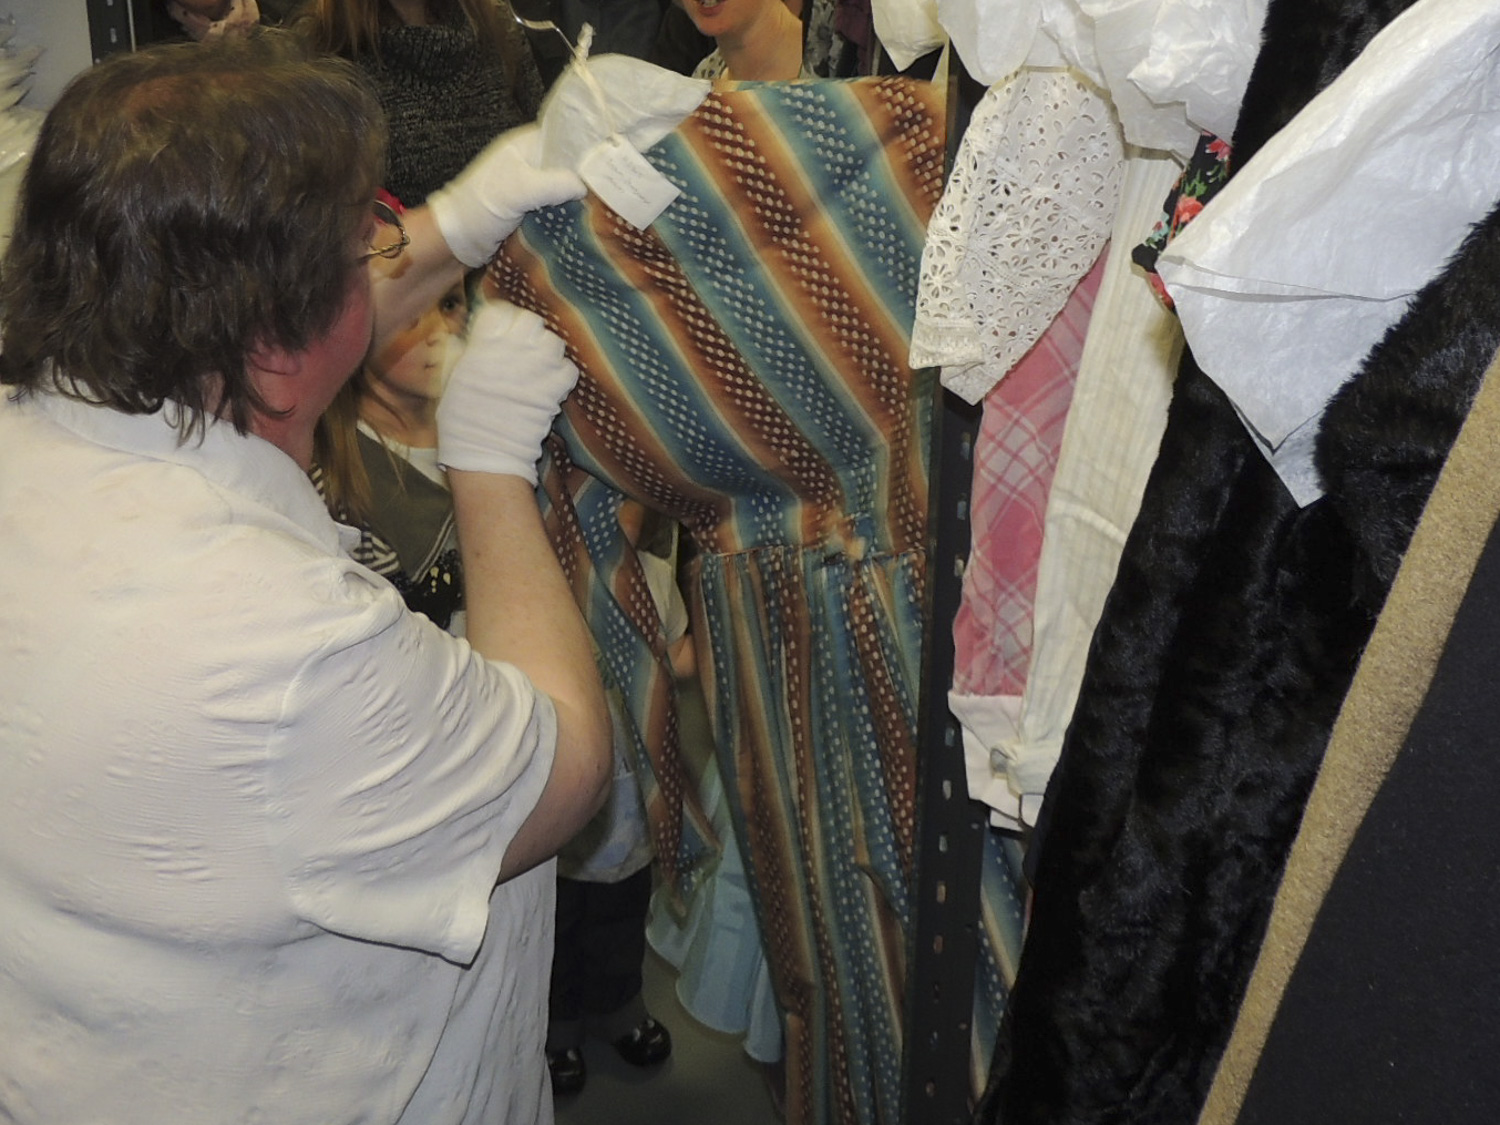 Lady with gloved hands inspecting a dress from the collections.